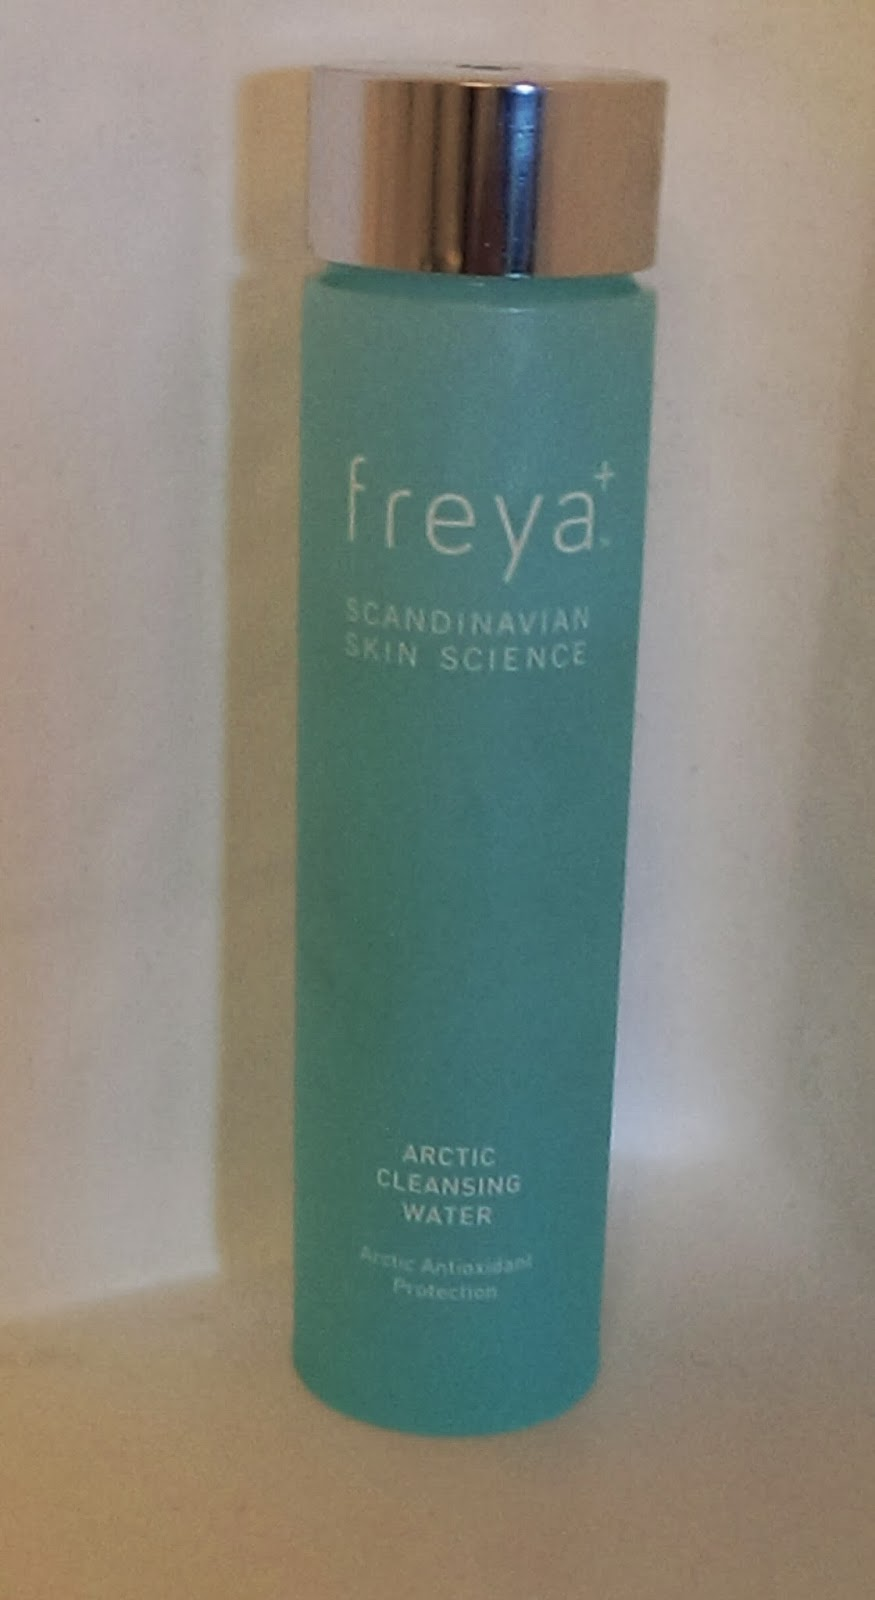 freya Freya Scandinavian Skin Care Review -The Best Anti Aging Products